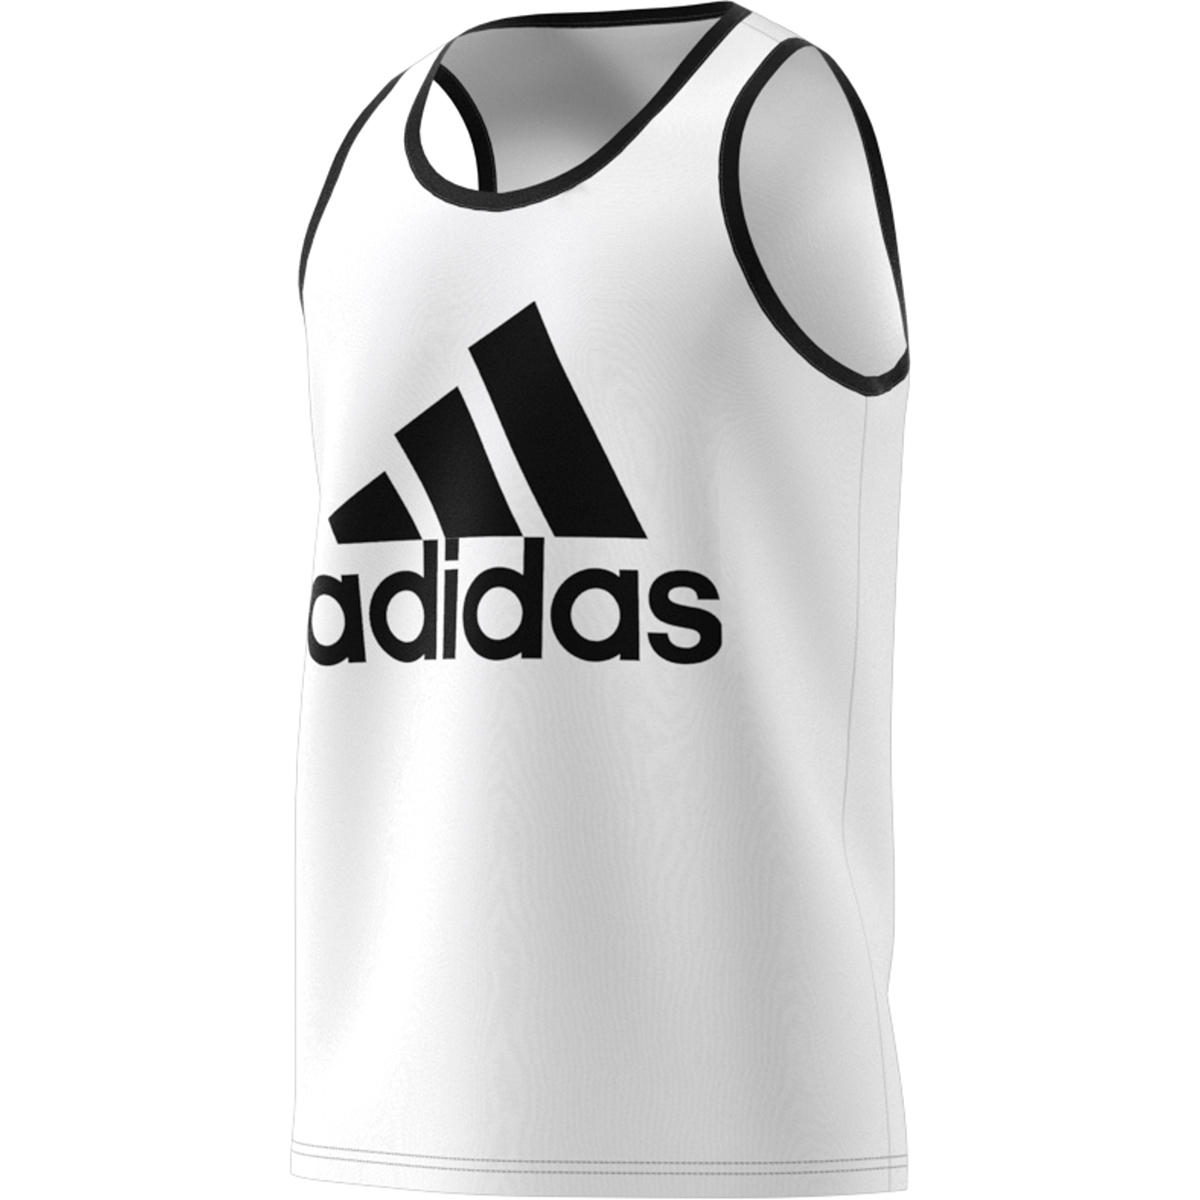 Adidas Men's Badge Of Sport Classic Tank Top - White, M